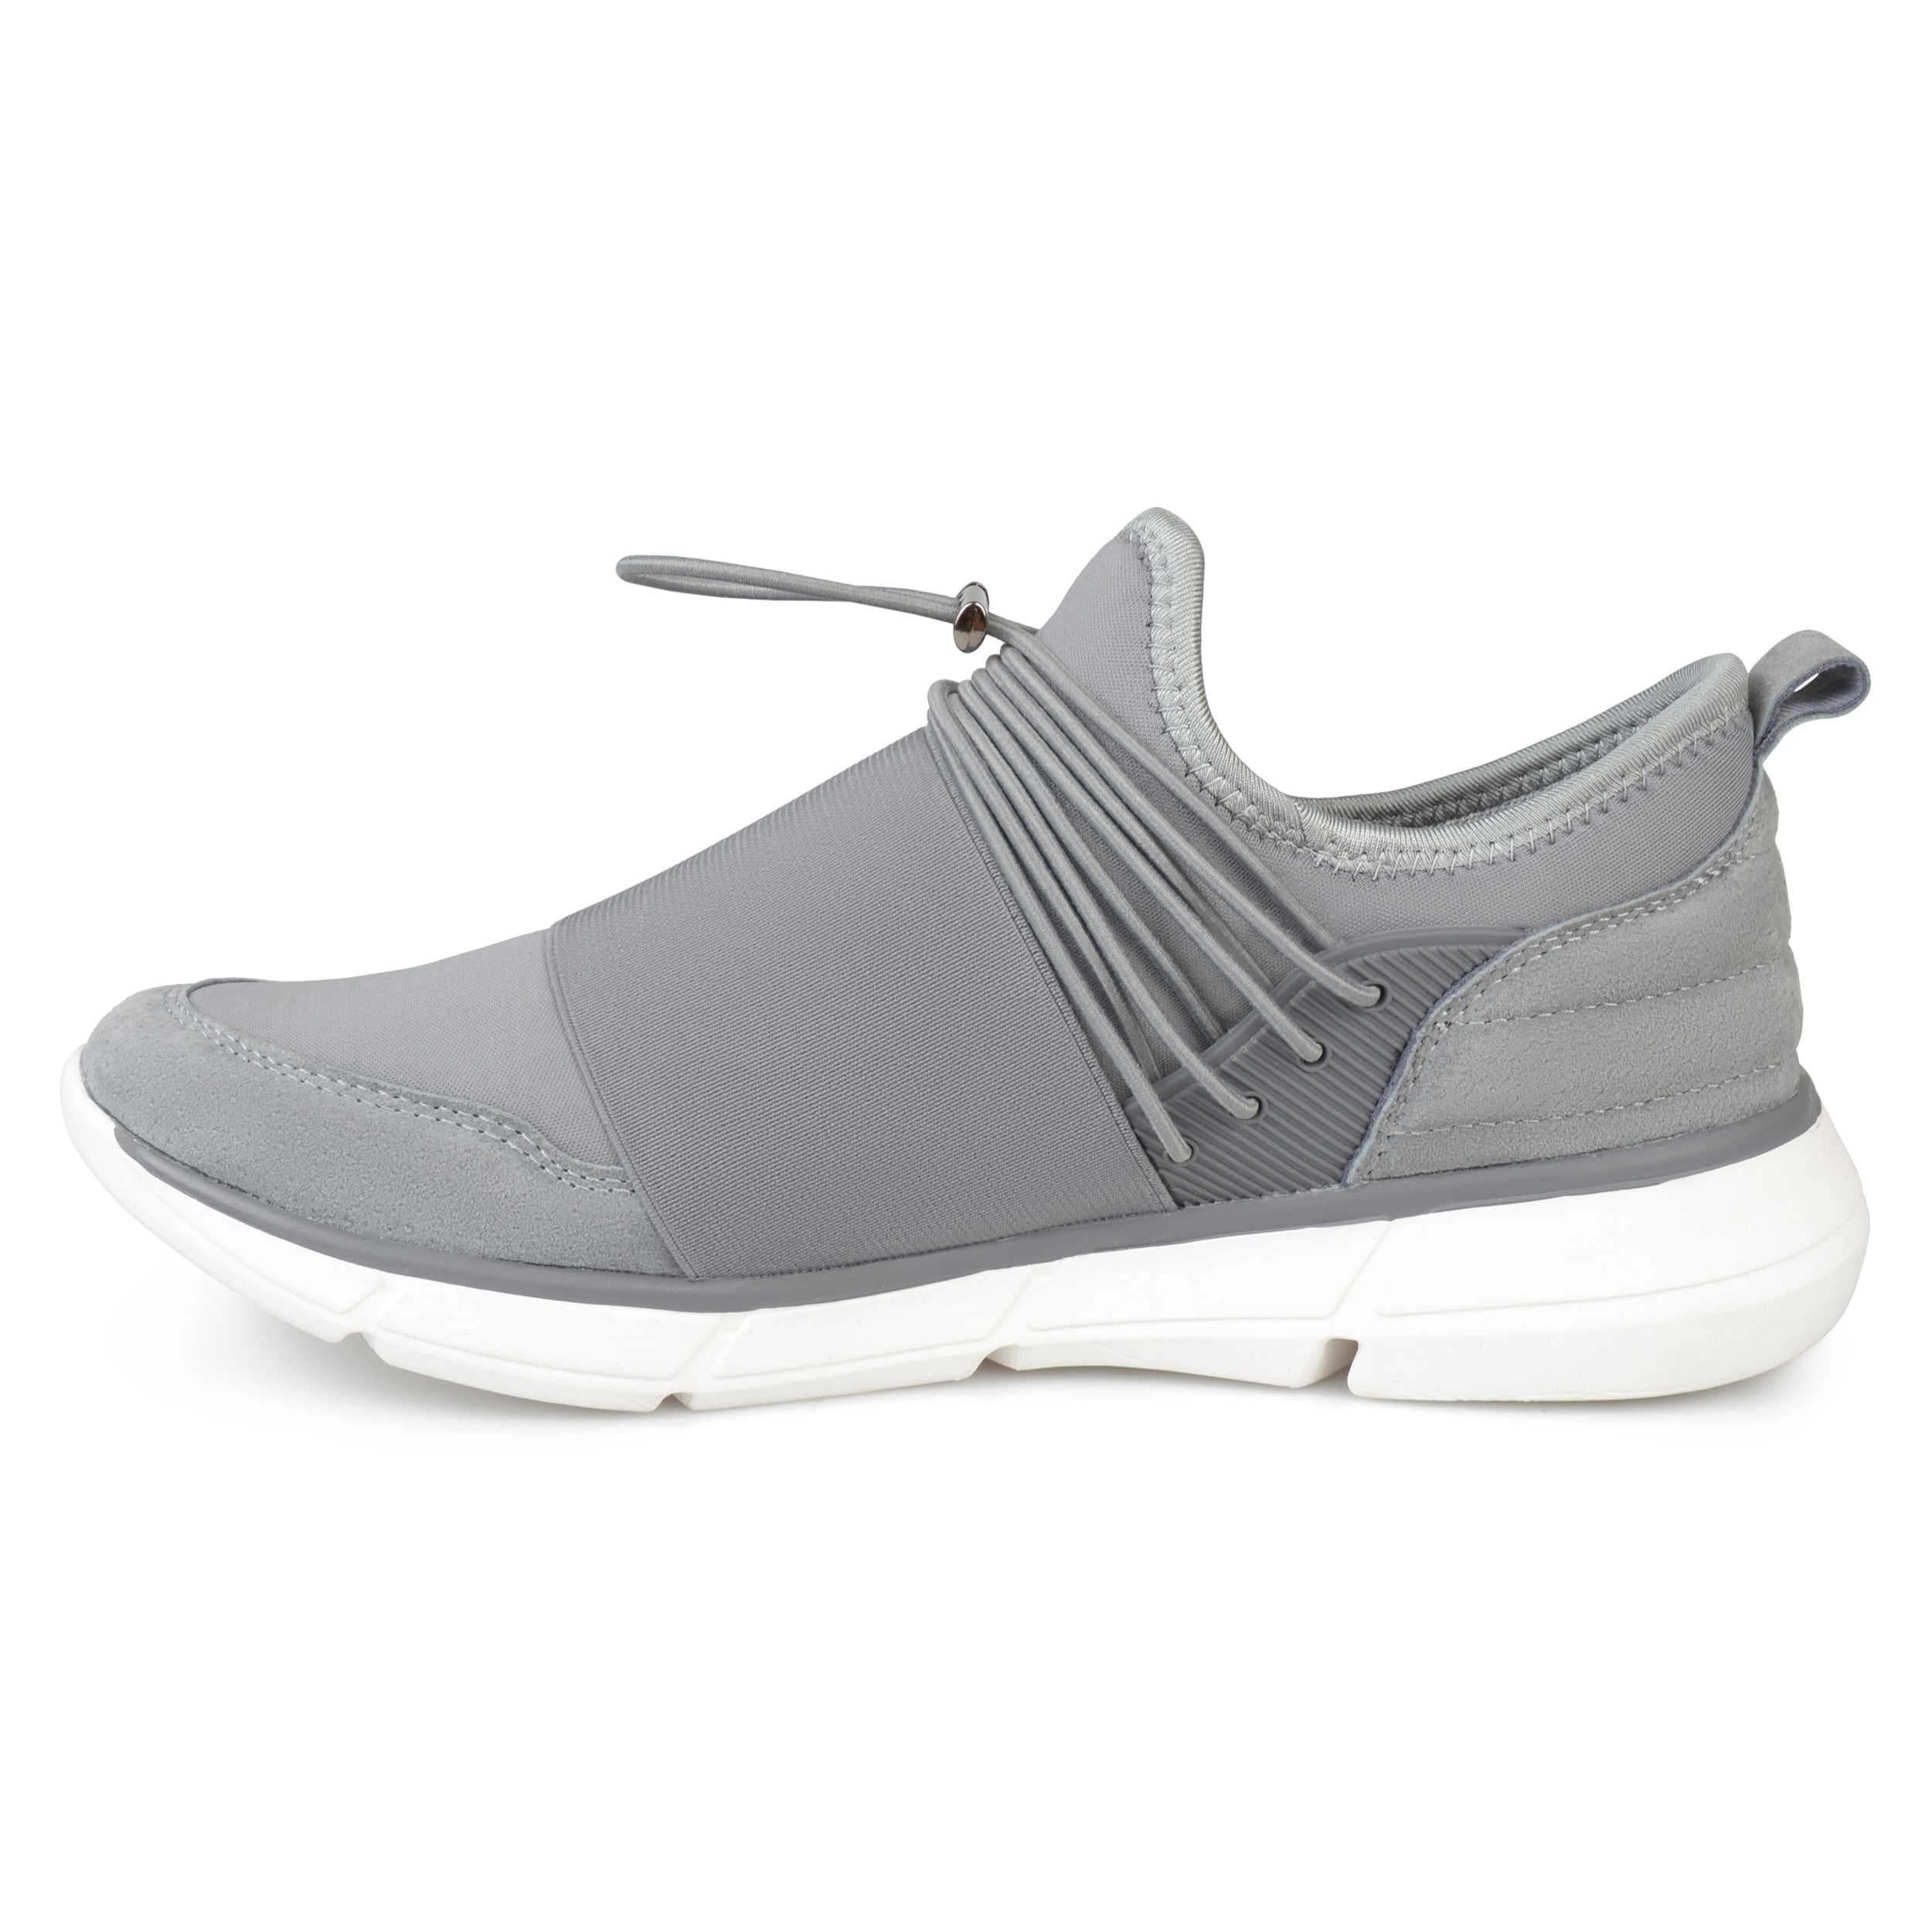 Vance Co. Smith Men's ... Athleisure Shoes vZmatR